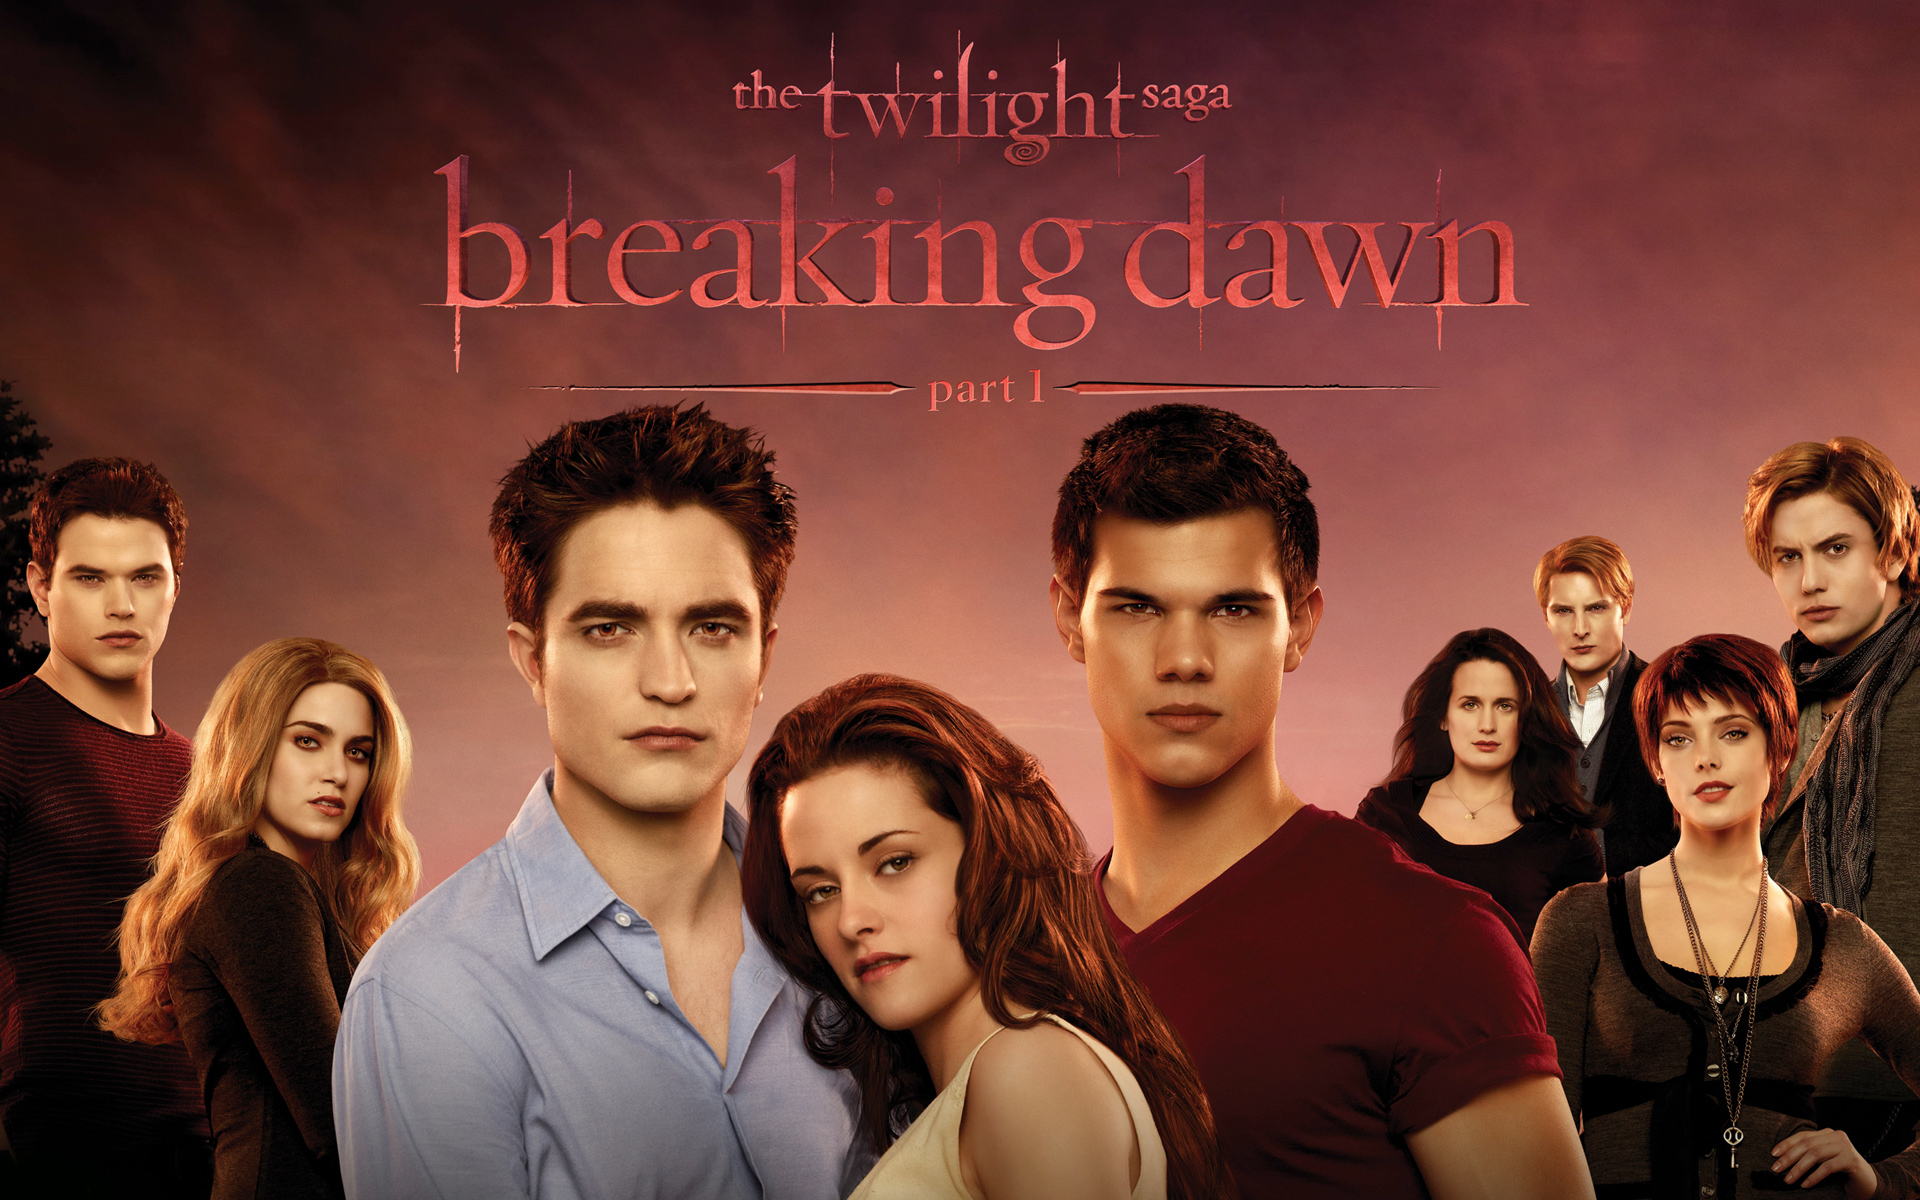 The Twilight Saga Breaking Dawn wallpaper